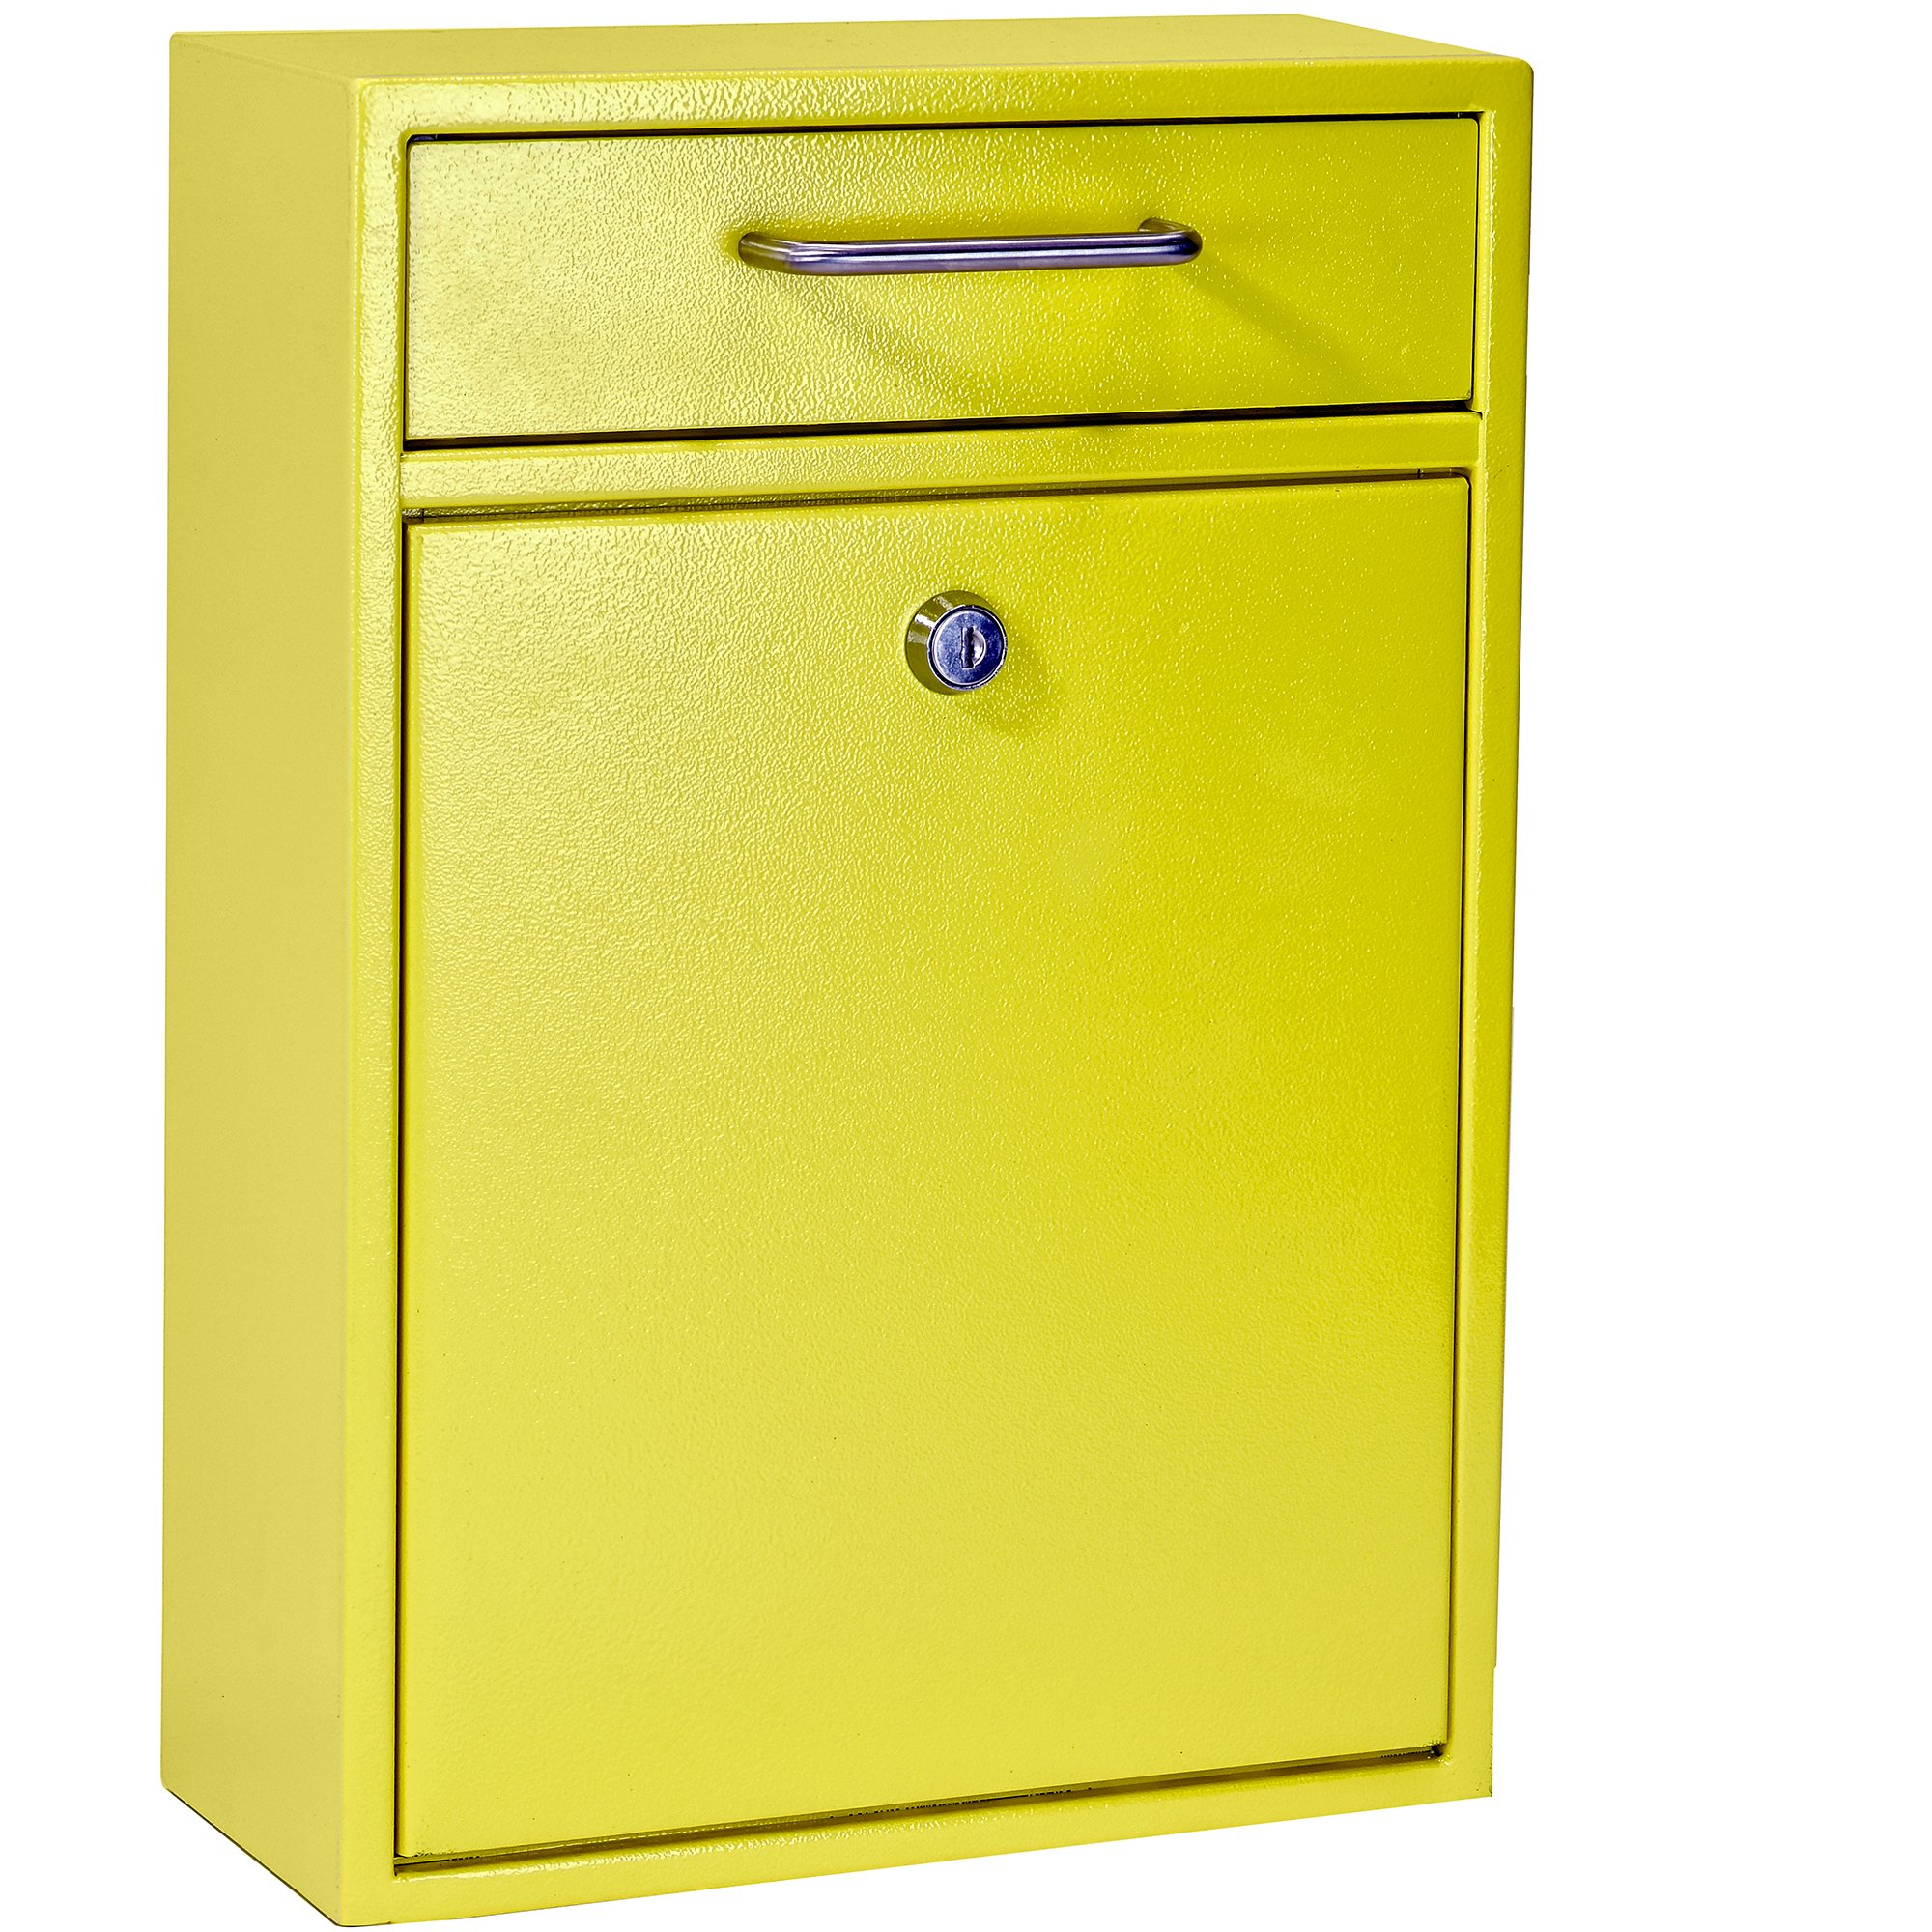 Mail Boss 7423 High Security Steel Locking Wall Mounted Mailbox - Office Drop Box - Comment Box - Letter Box - Deposit Box, Yellow